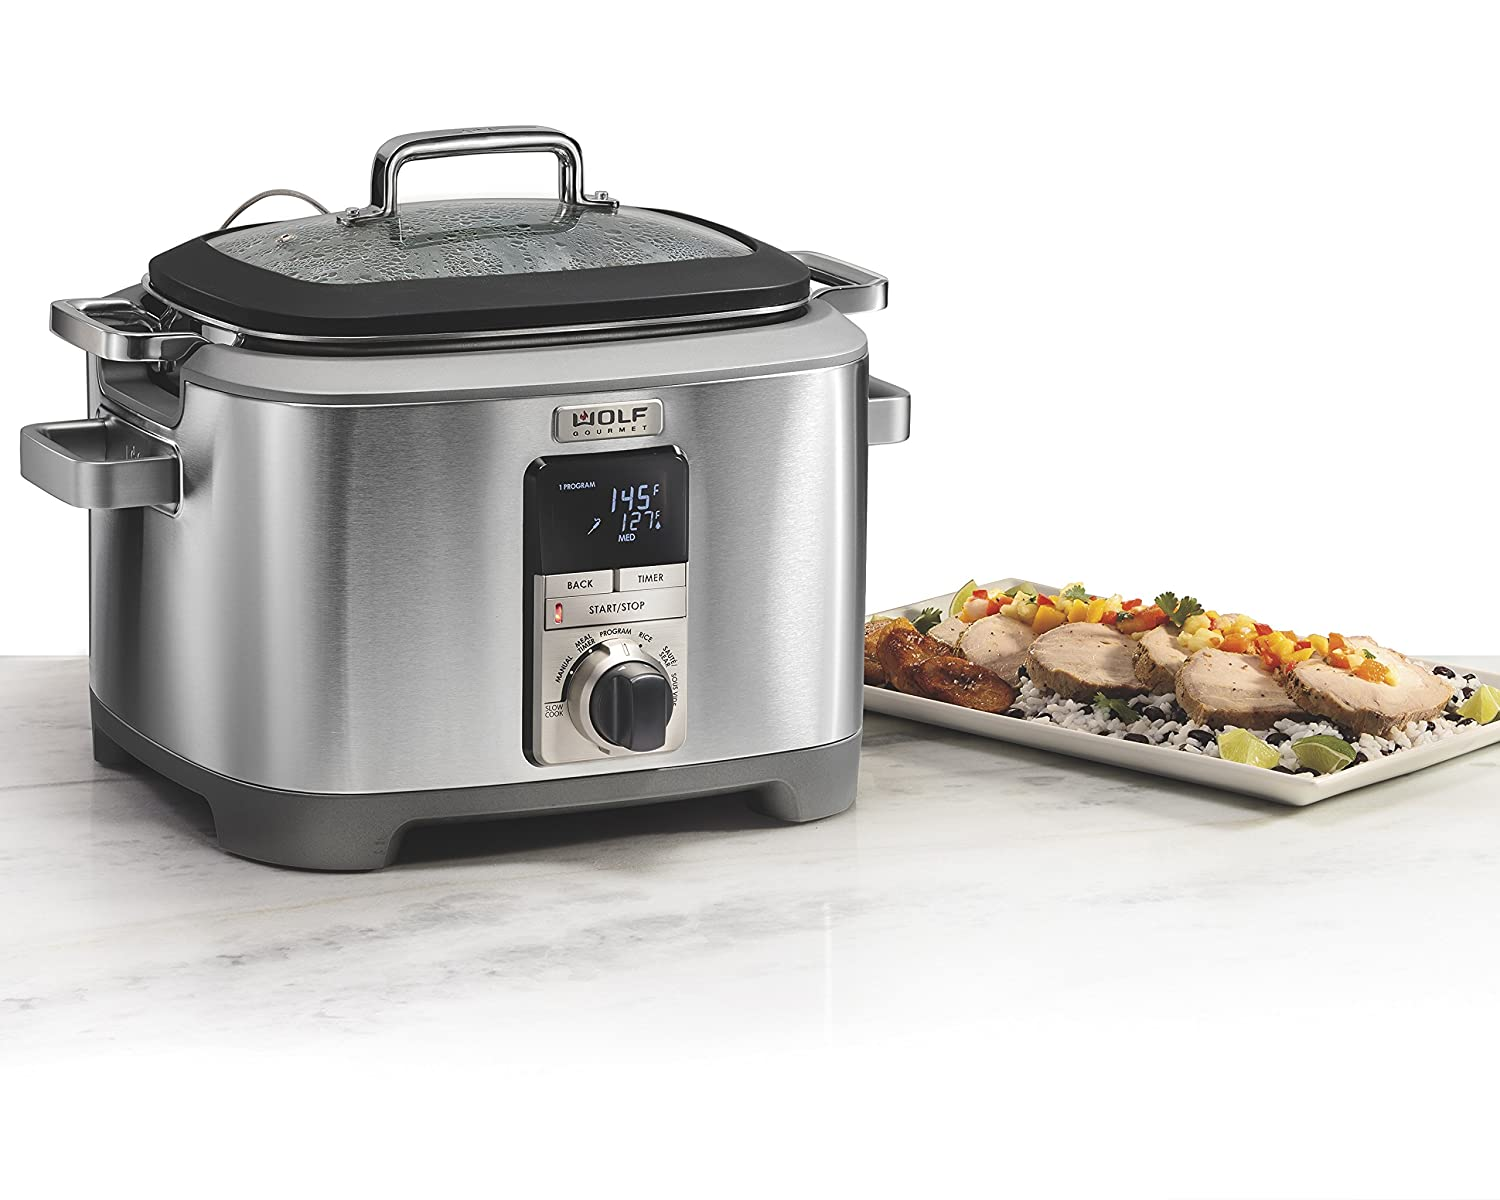 Wolf Gourmet WGSC120S Programmable Multi Function Cooker with Temperature Probe - Slow Cooker, Rice Cooker, Sauté, Sear, Sous Vide, Stainless Steel with Grey Knob (Grey)